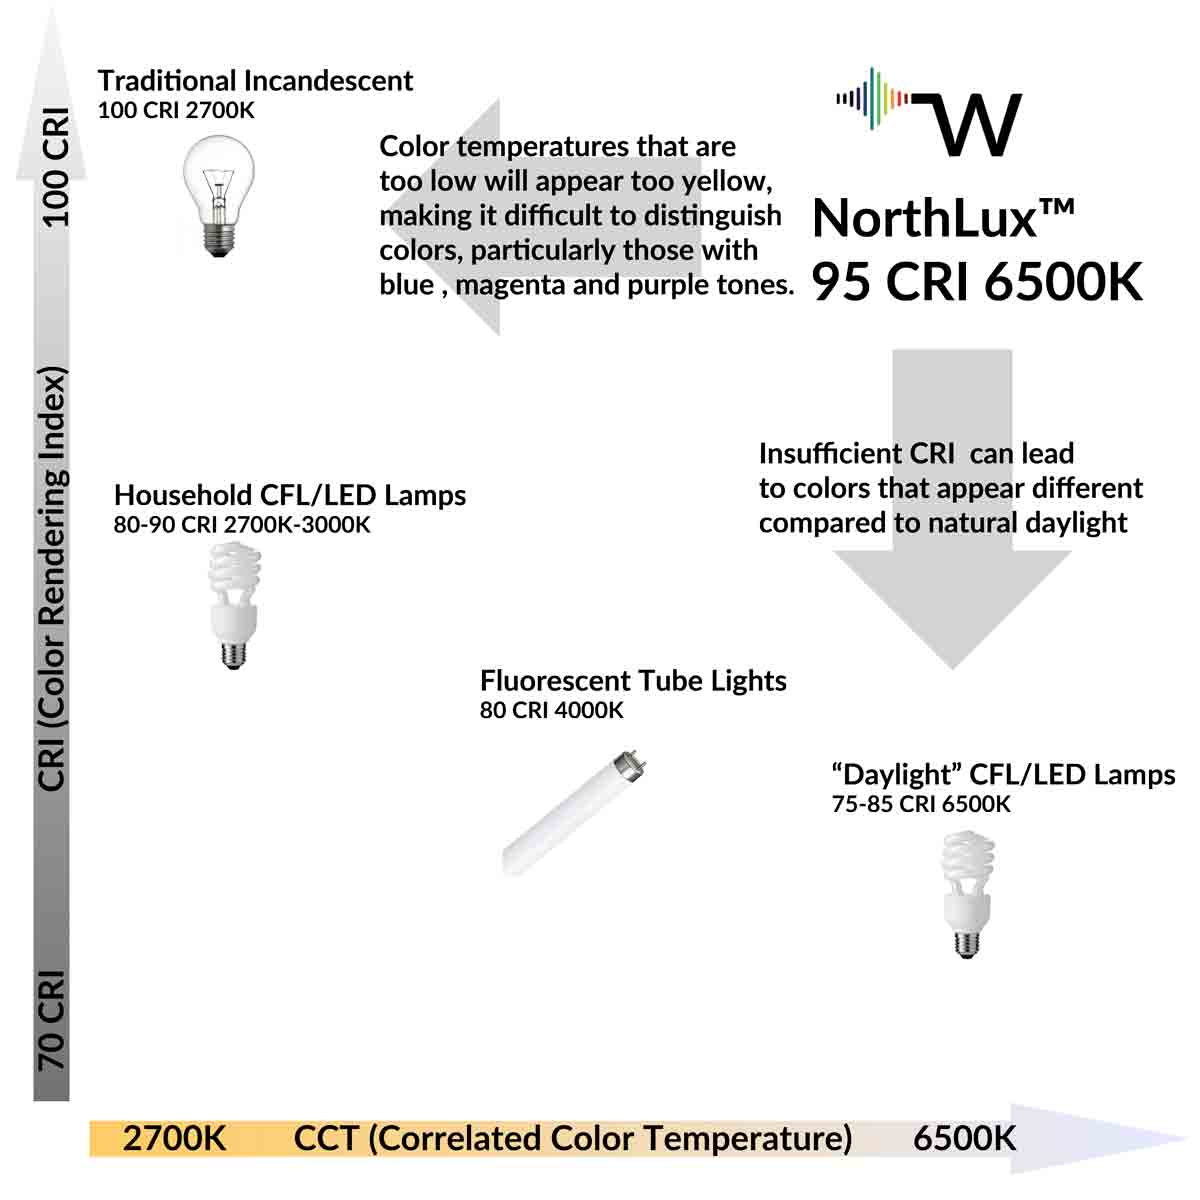 Northlux Art Studio Lighting Products Waveform Fluorescent Light Diagram Doing It Yourself Color Of The Itself Is Same As Natural Daylight And 95 Cri Indicates That Objects Illuminated By This Lamp Also Appear They Would